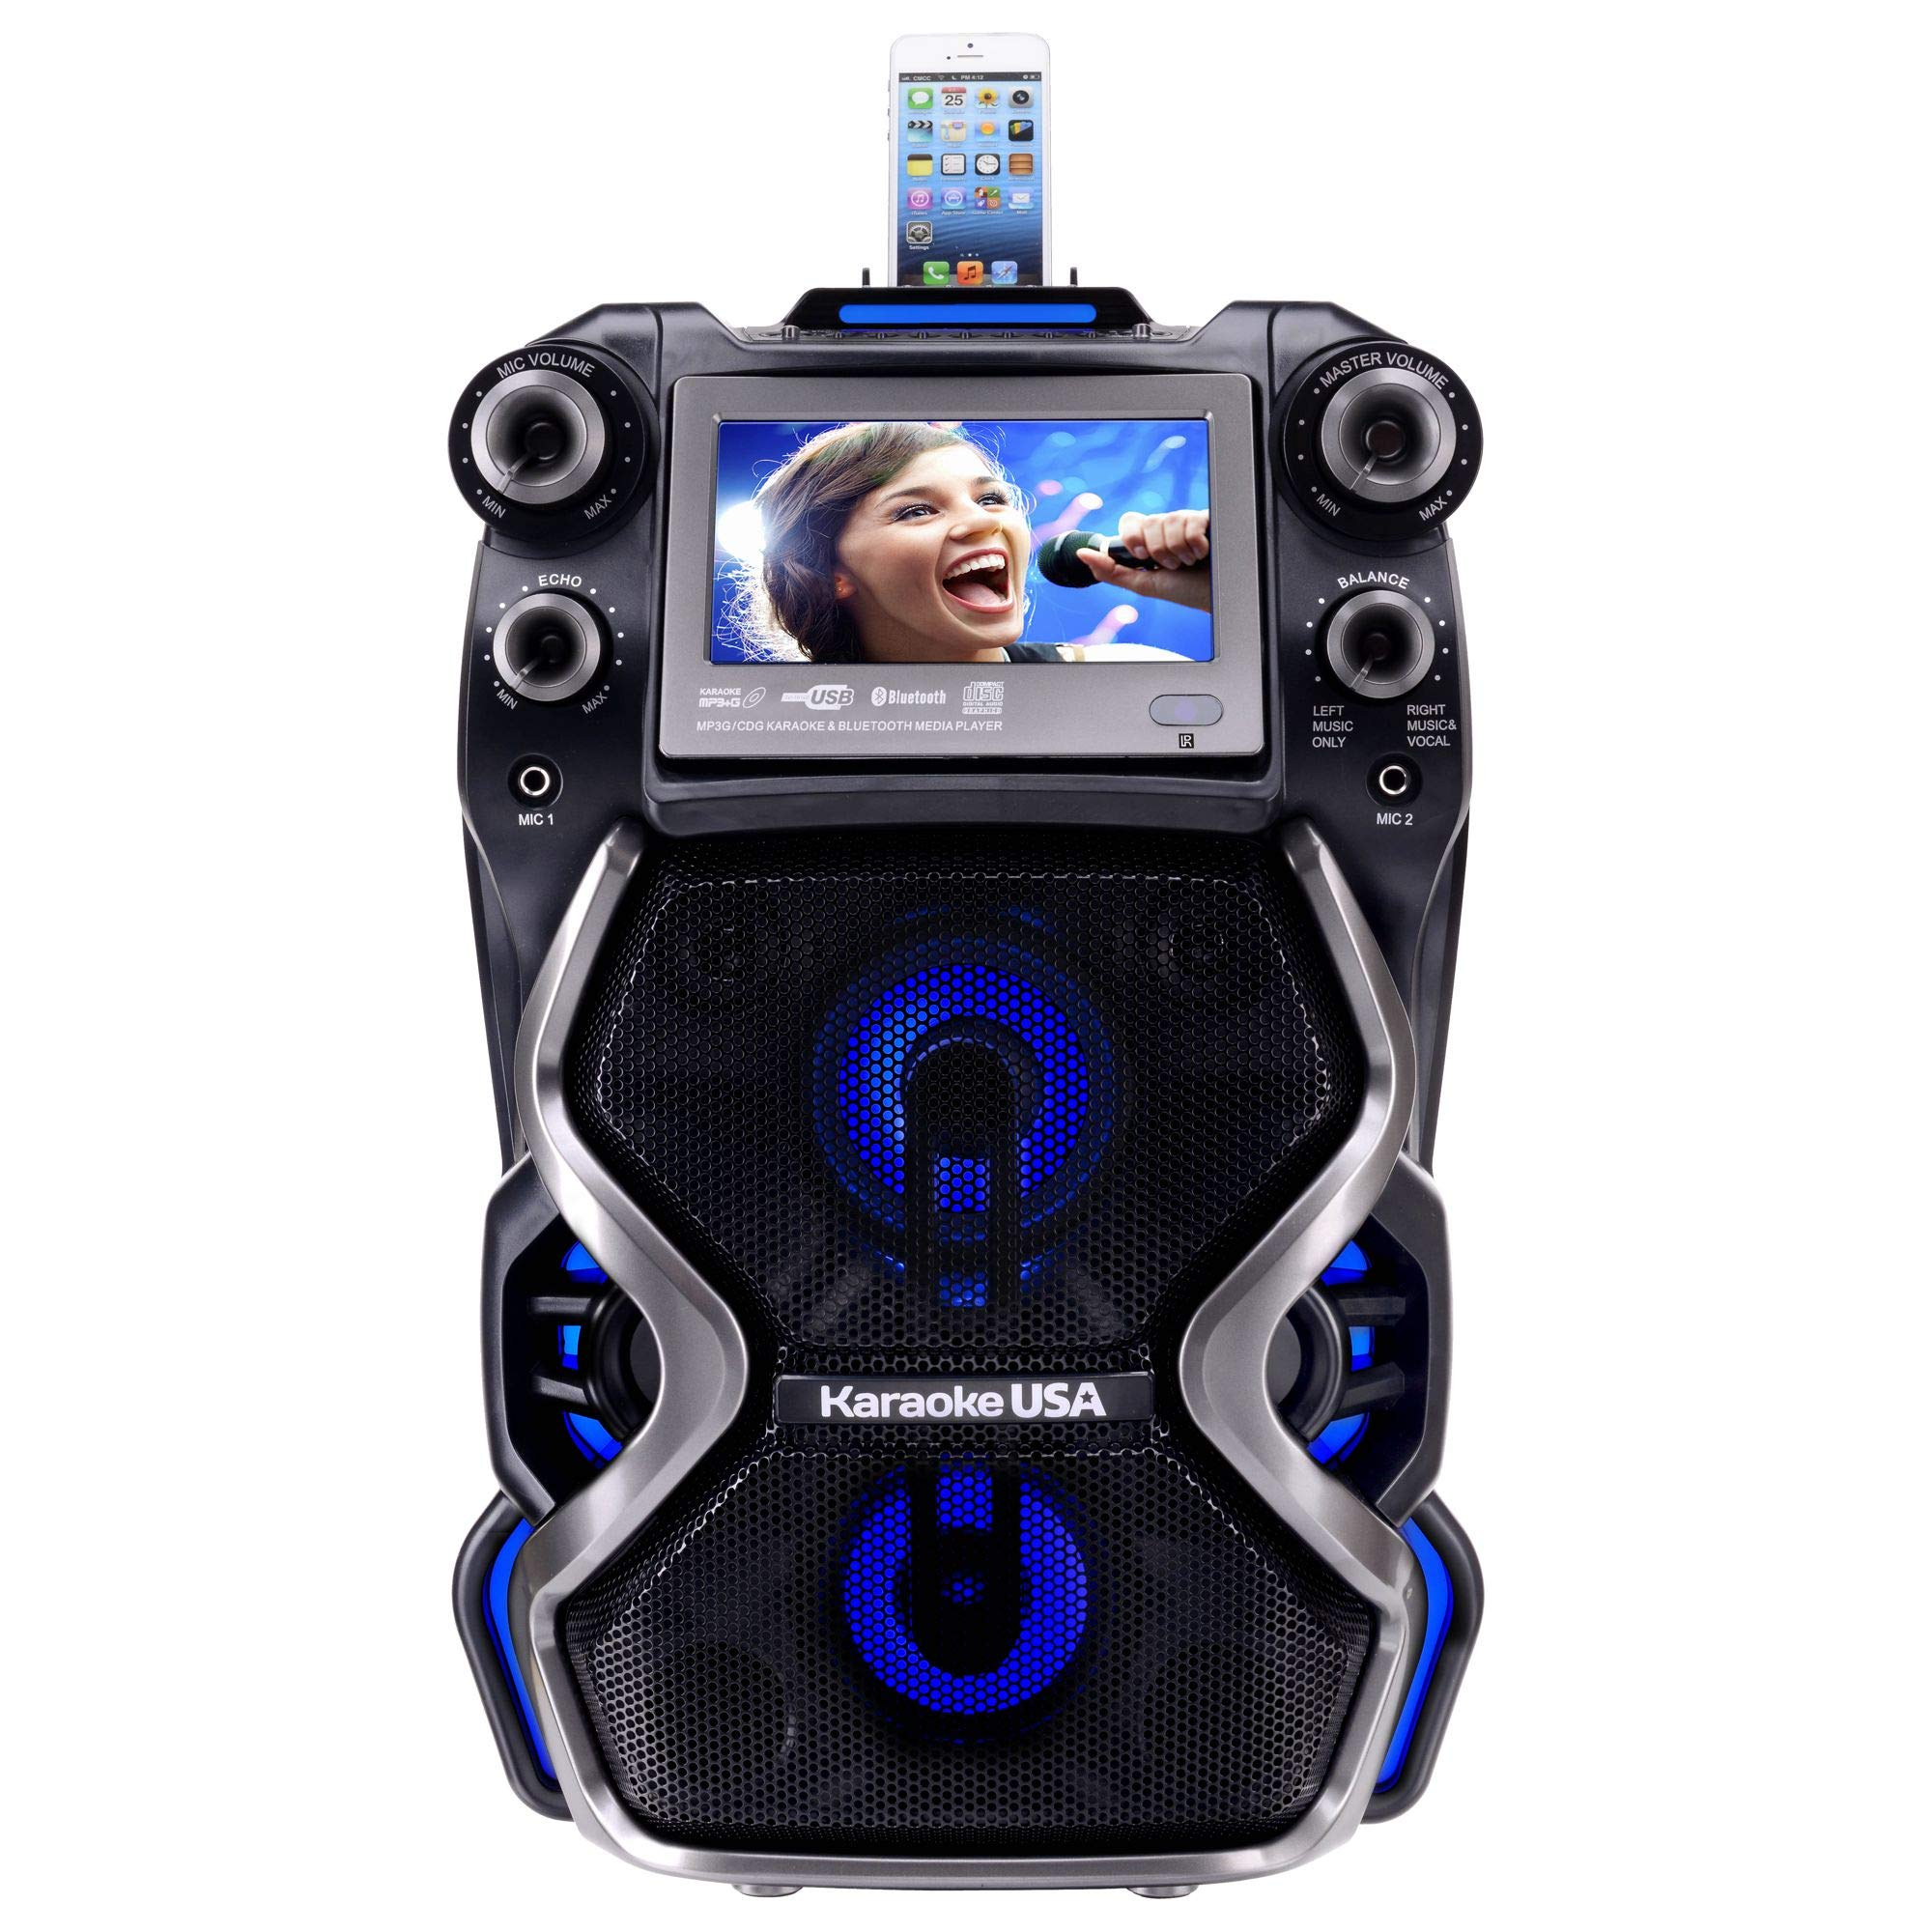 Karaoke USA GF920 Outdoor Portable Professional Bluetooth Karaoke Machine and PA System with Rechargeable Lithium Battery by Karaoke USA (Image #5)